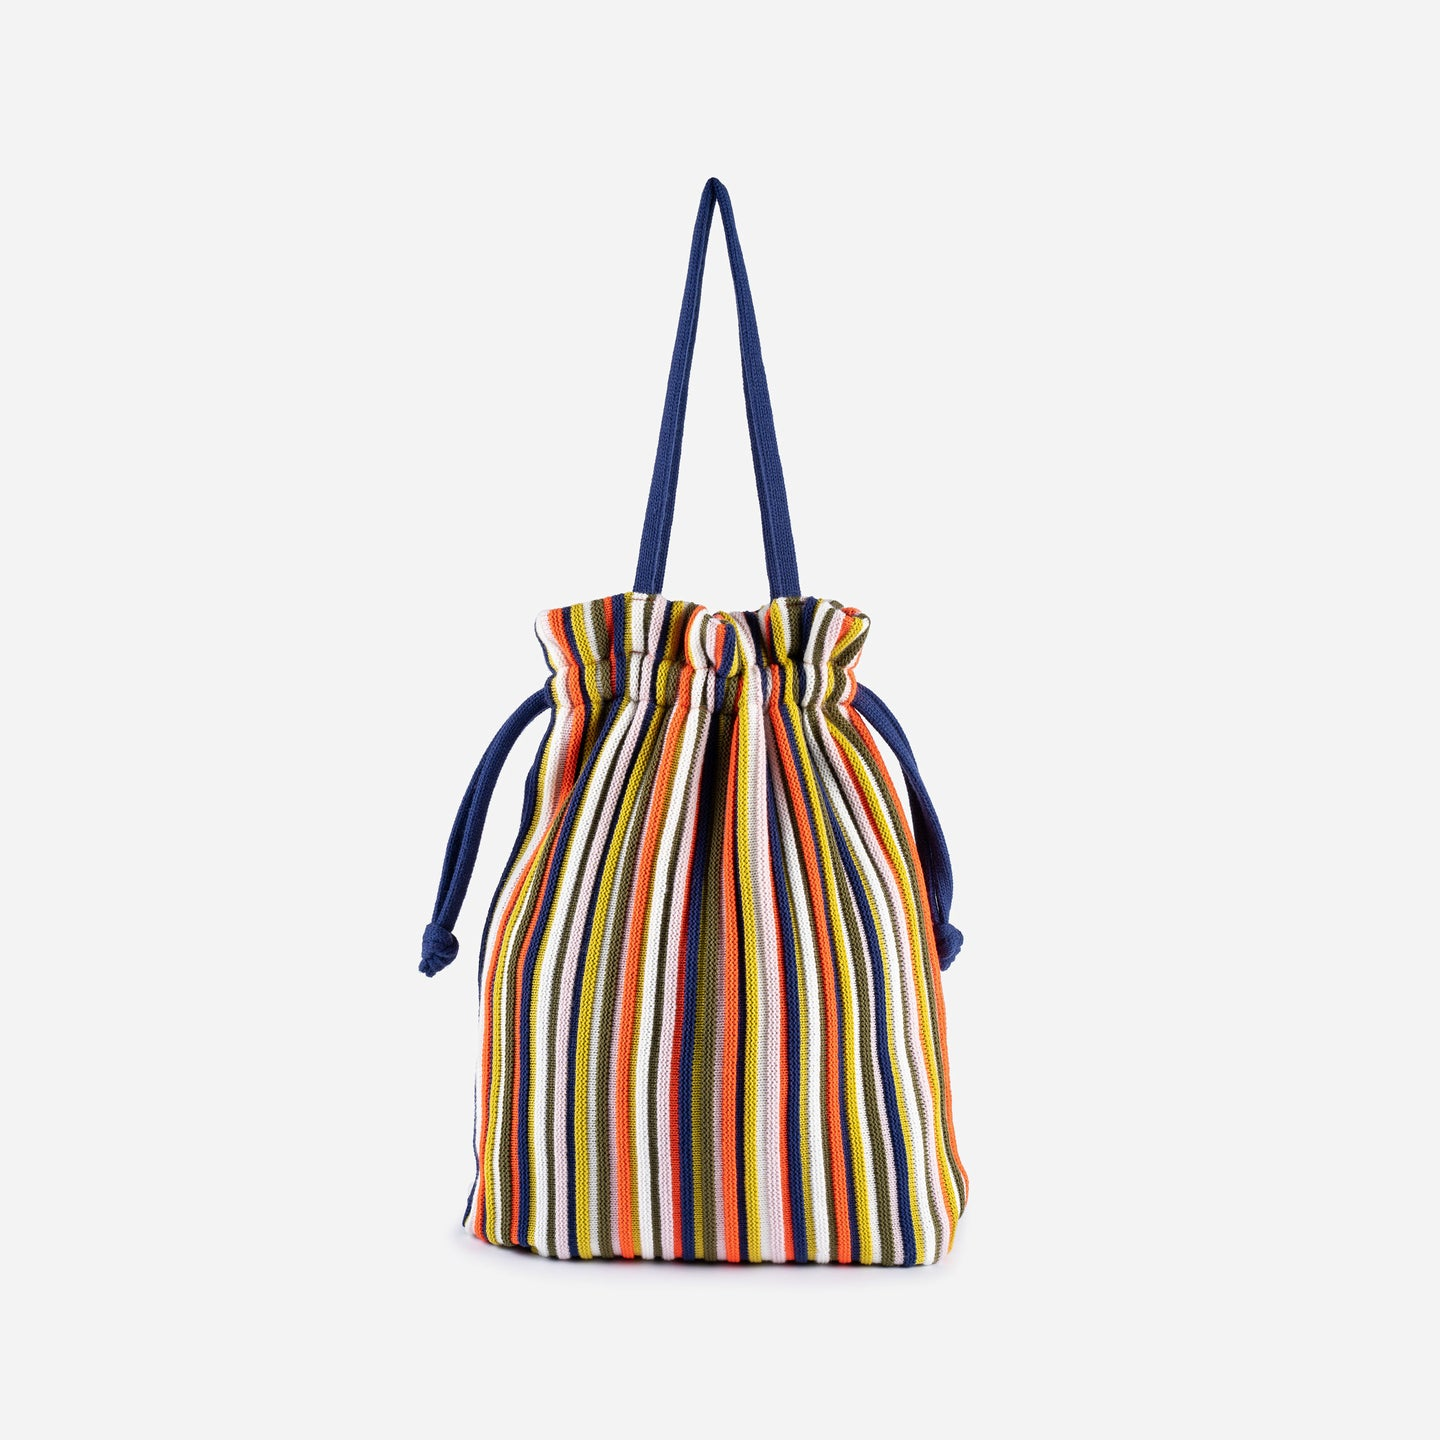 Rib Cord Drawstring Tote Knit Multi Color Repurposed